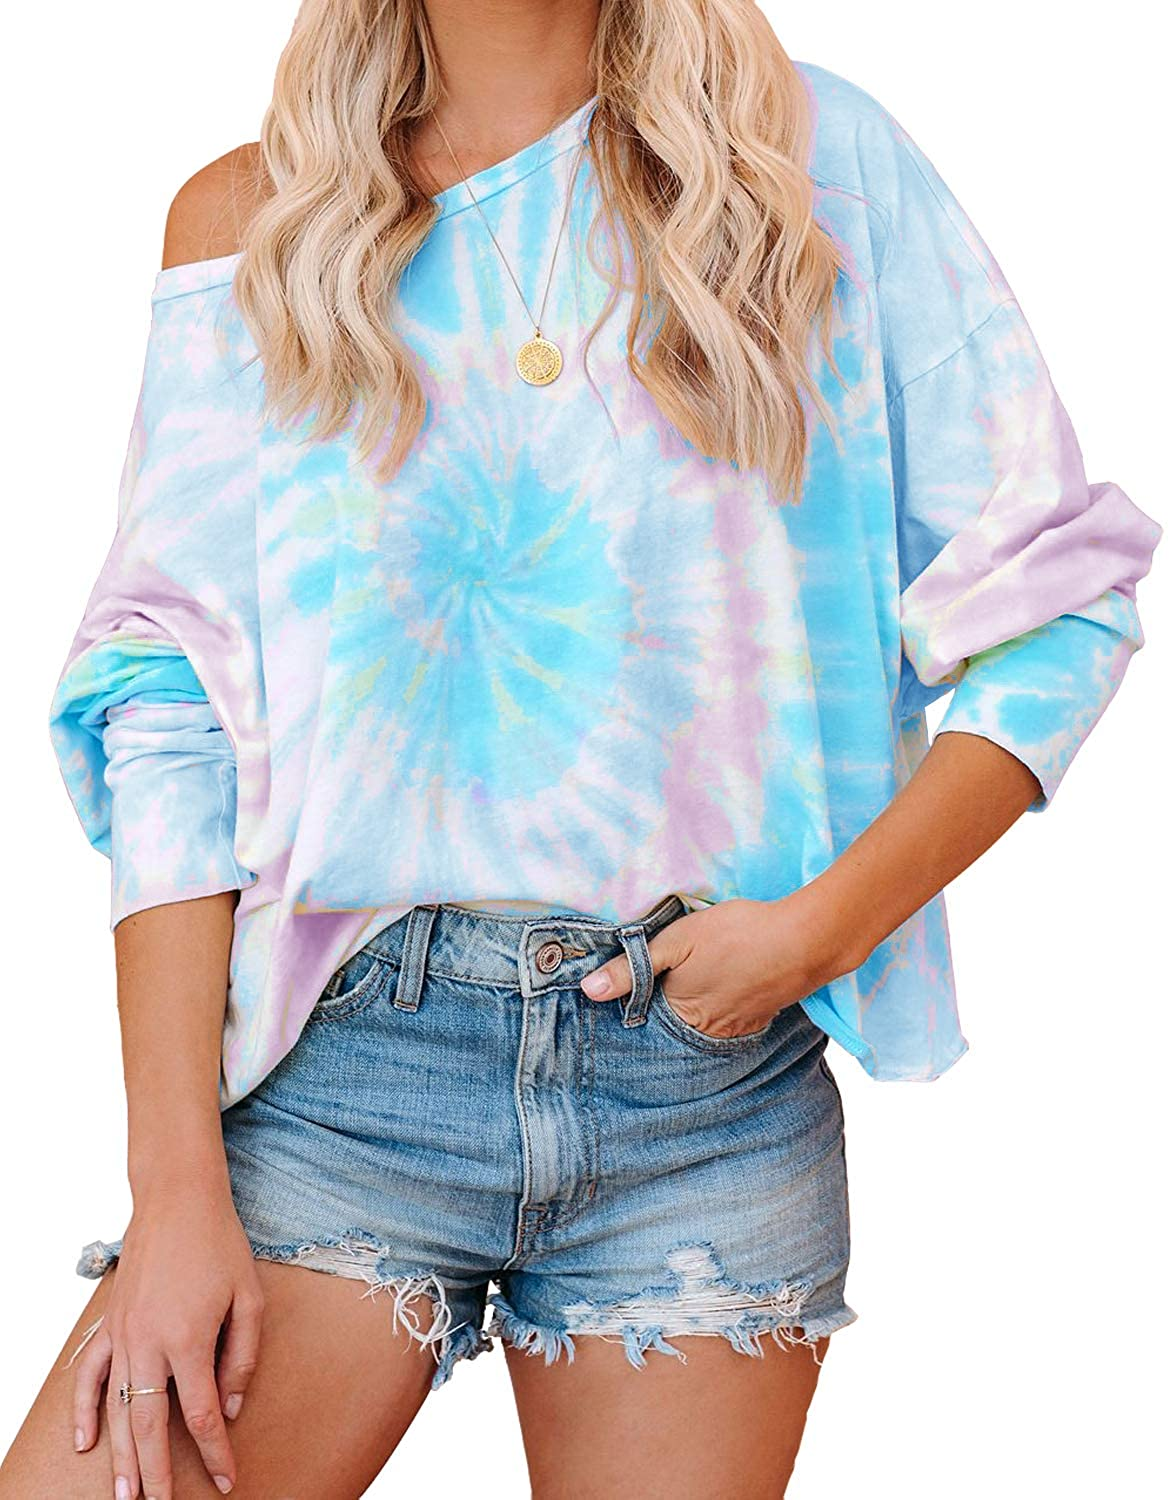 ReachMe Womens Off Shoulder Tie Dye Printed Shirt Loose Contrast Color Pullover Loungewear